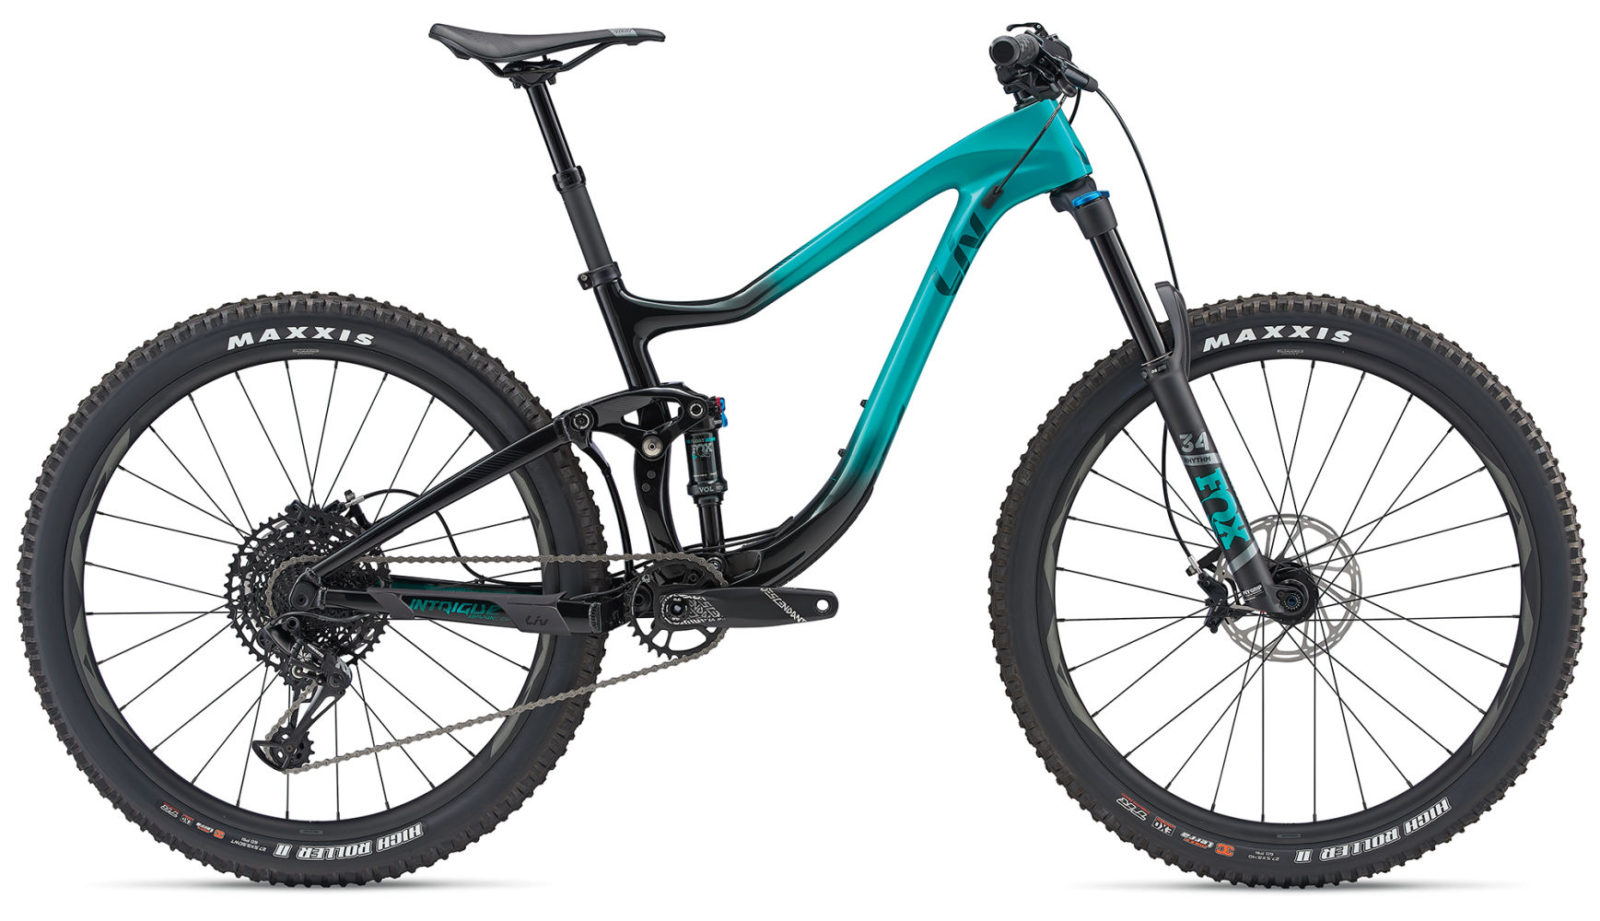 LIV MTB Intrigue Advanced 2 2019